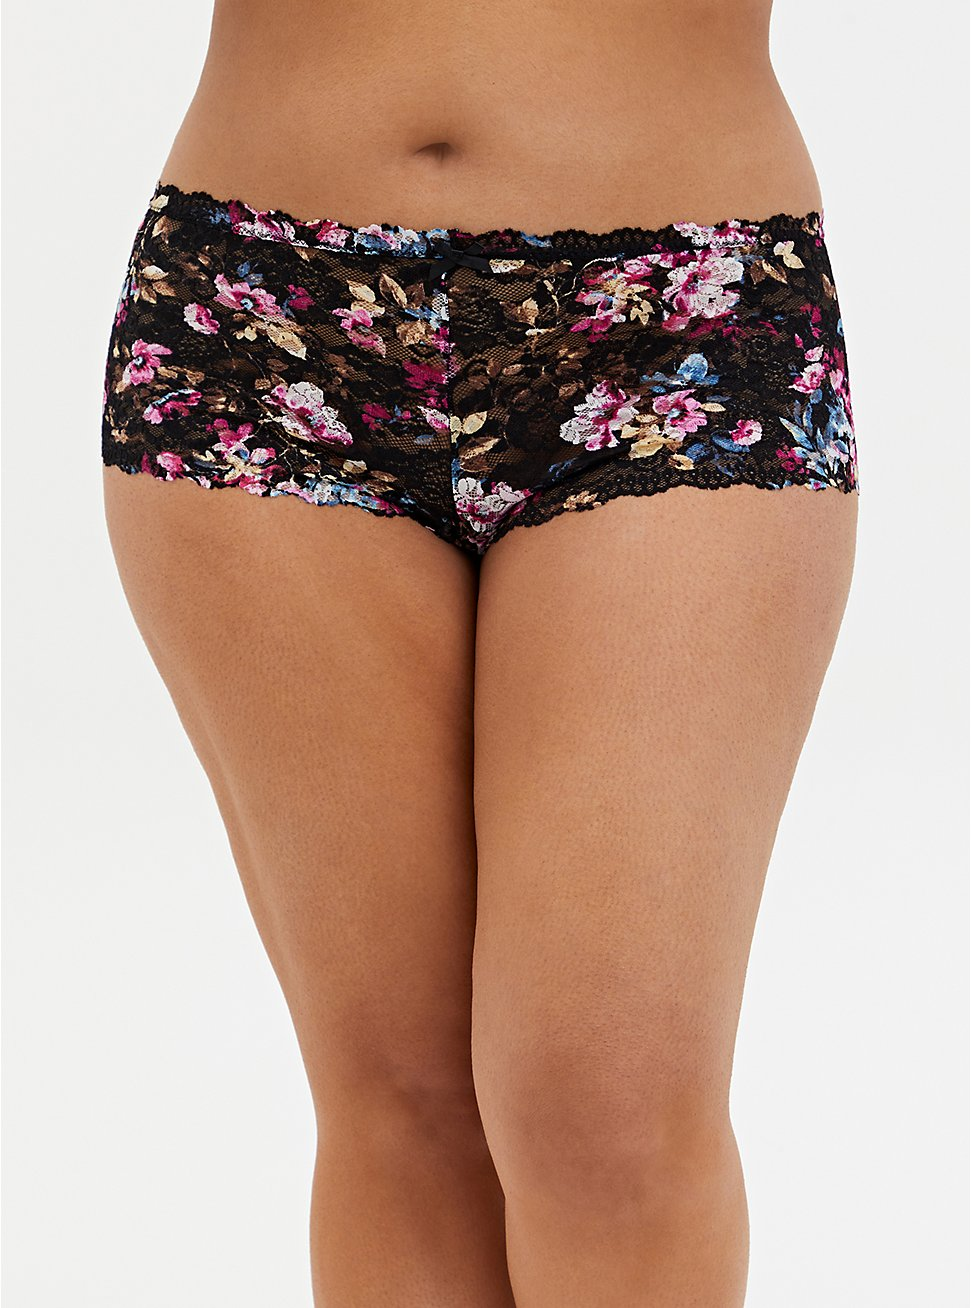 Black Floral Lace Cheeky Panty , RICH BLACK AND ROEBUCK BEIGE, hi-res